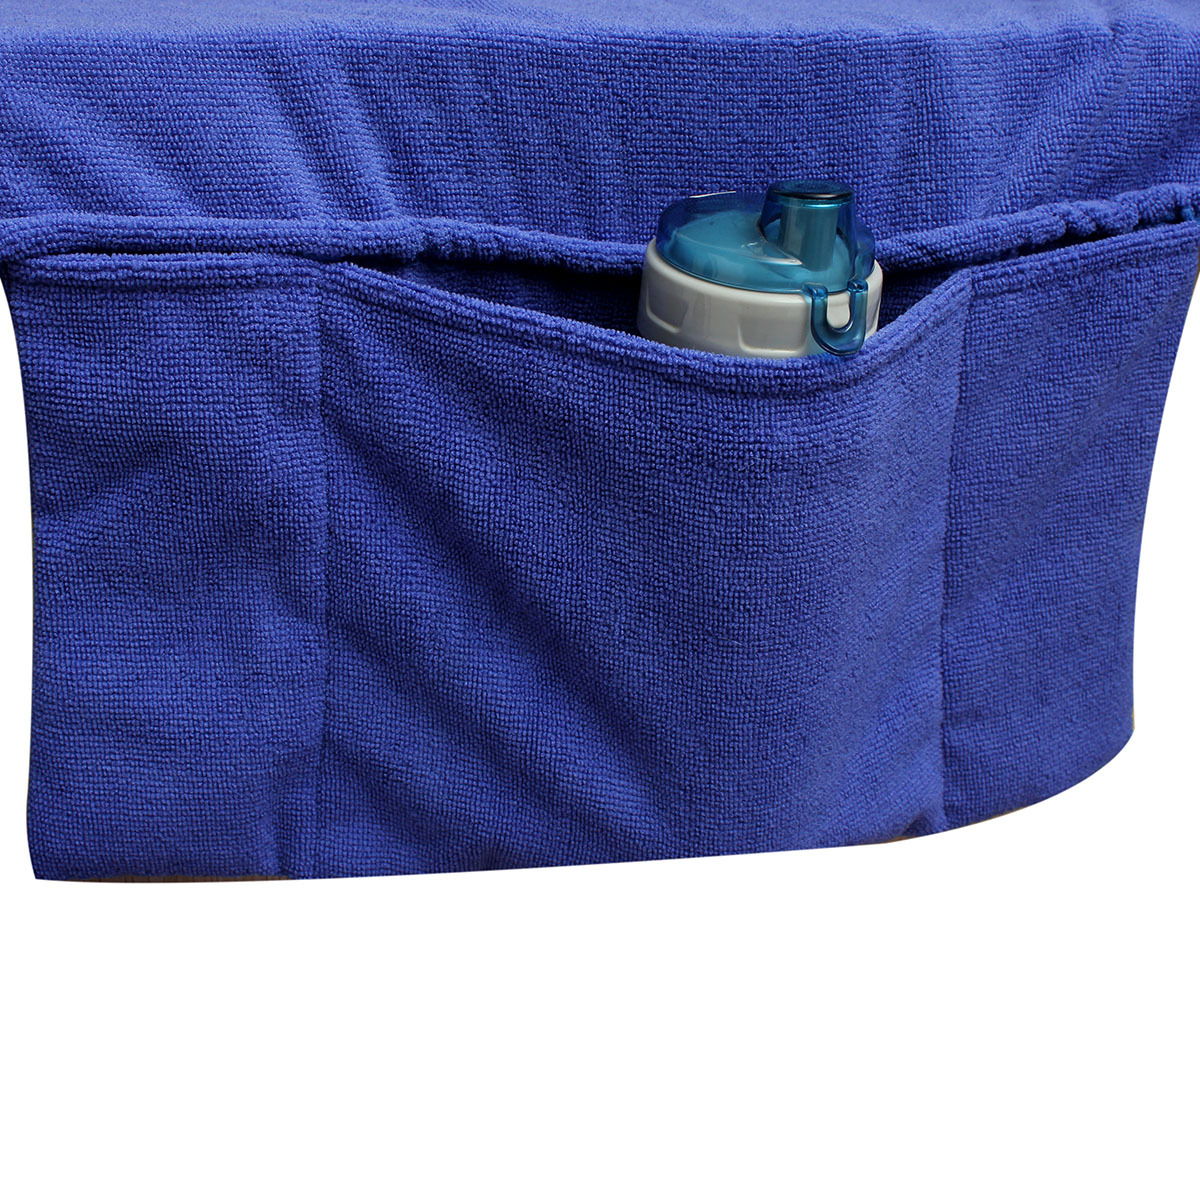 beach towels with pocket for lounge chair chairs and recliners sun cover tote bag large